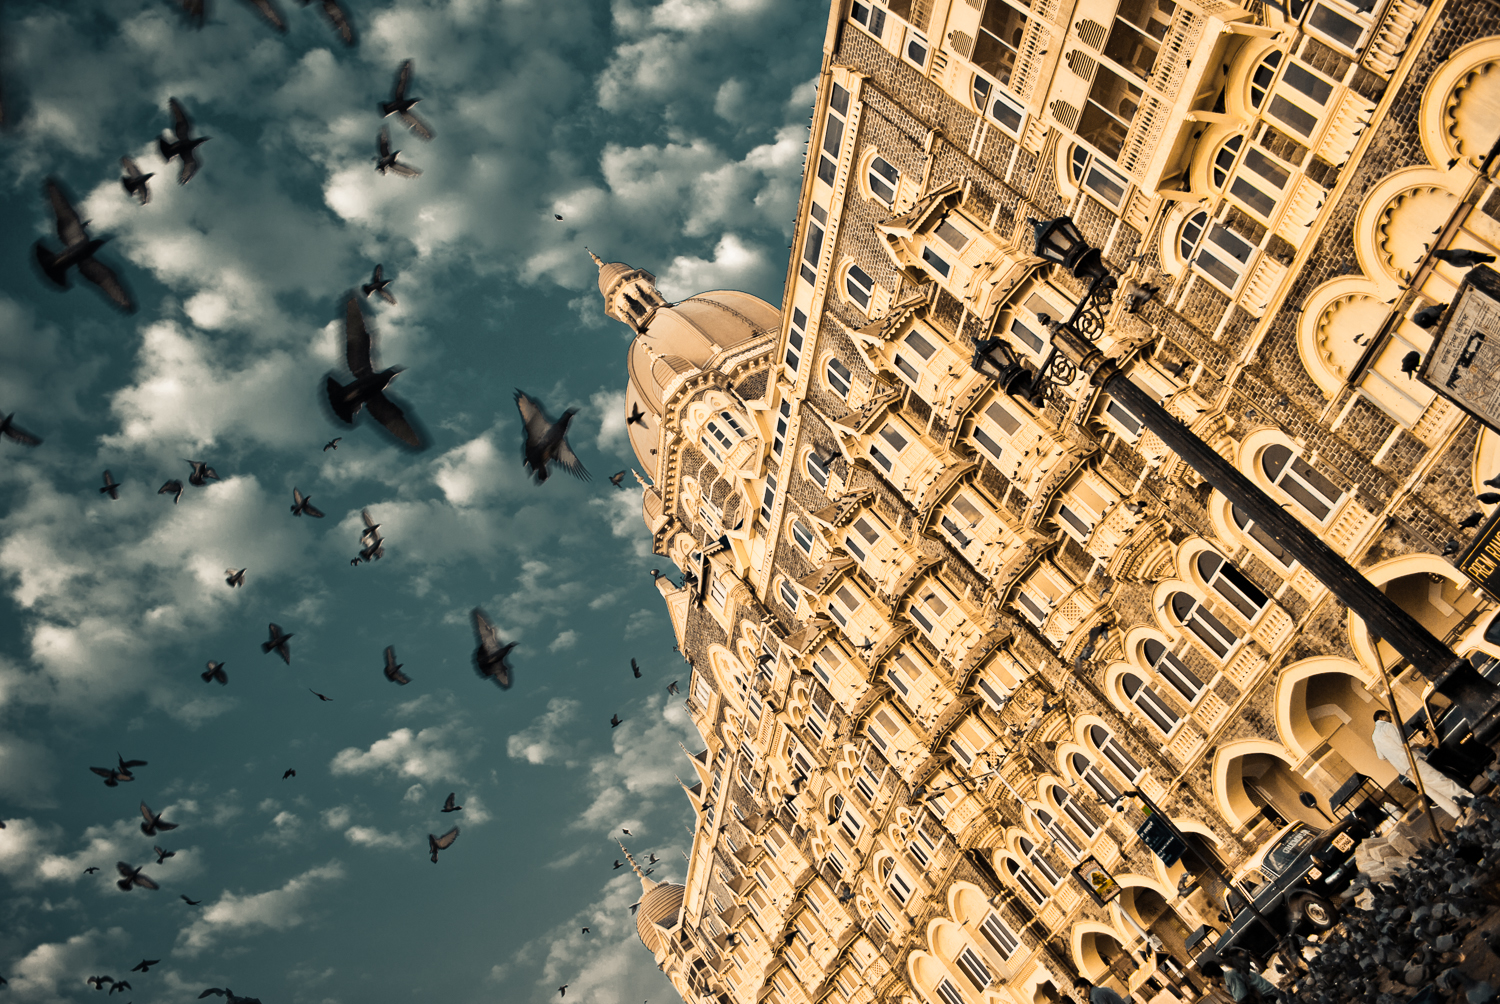 Flights of Freedom, at Gateway of India (Taj Mahal Hotel seen), Mumbai